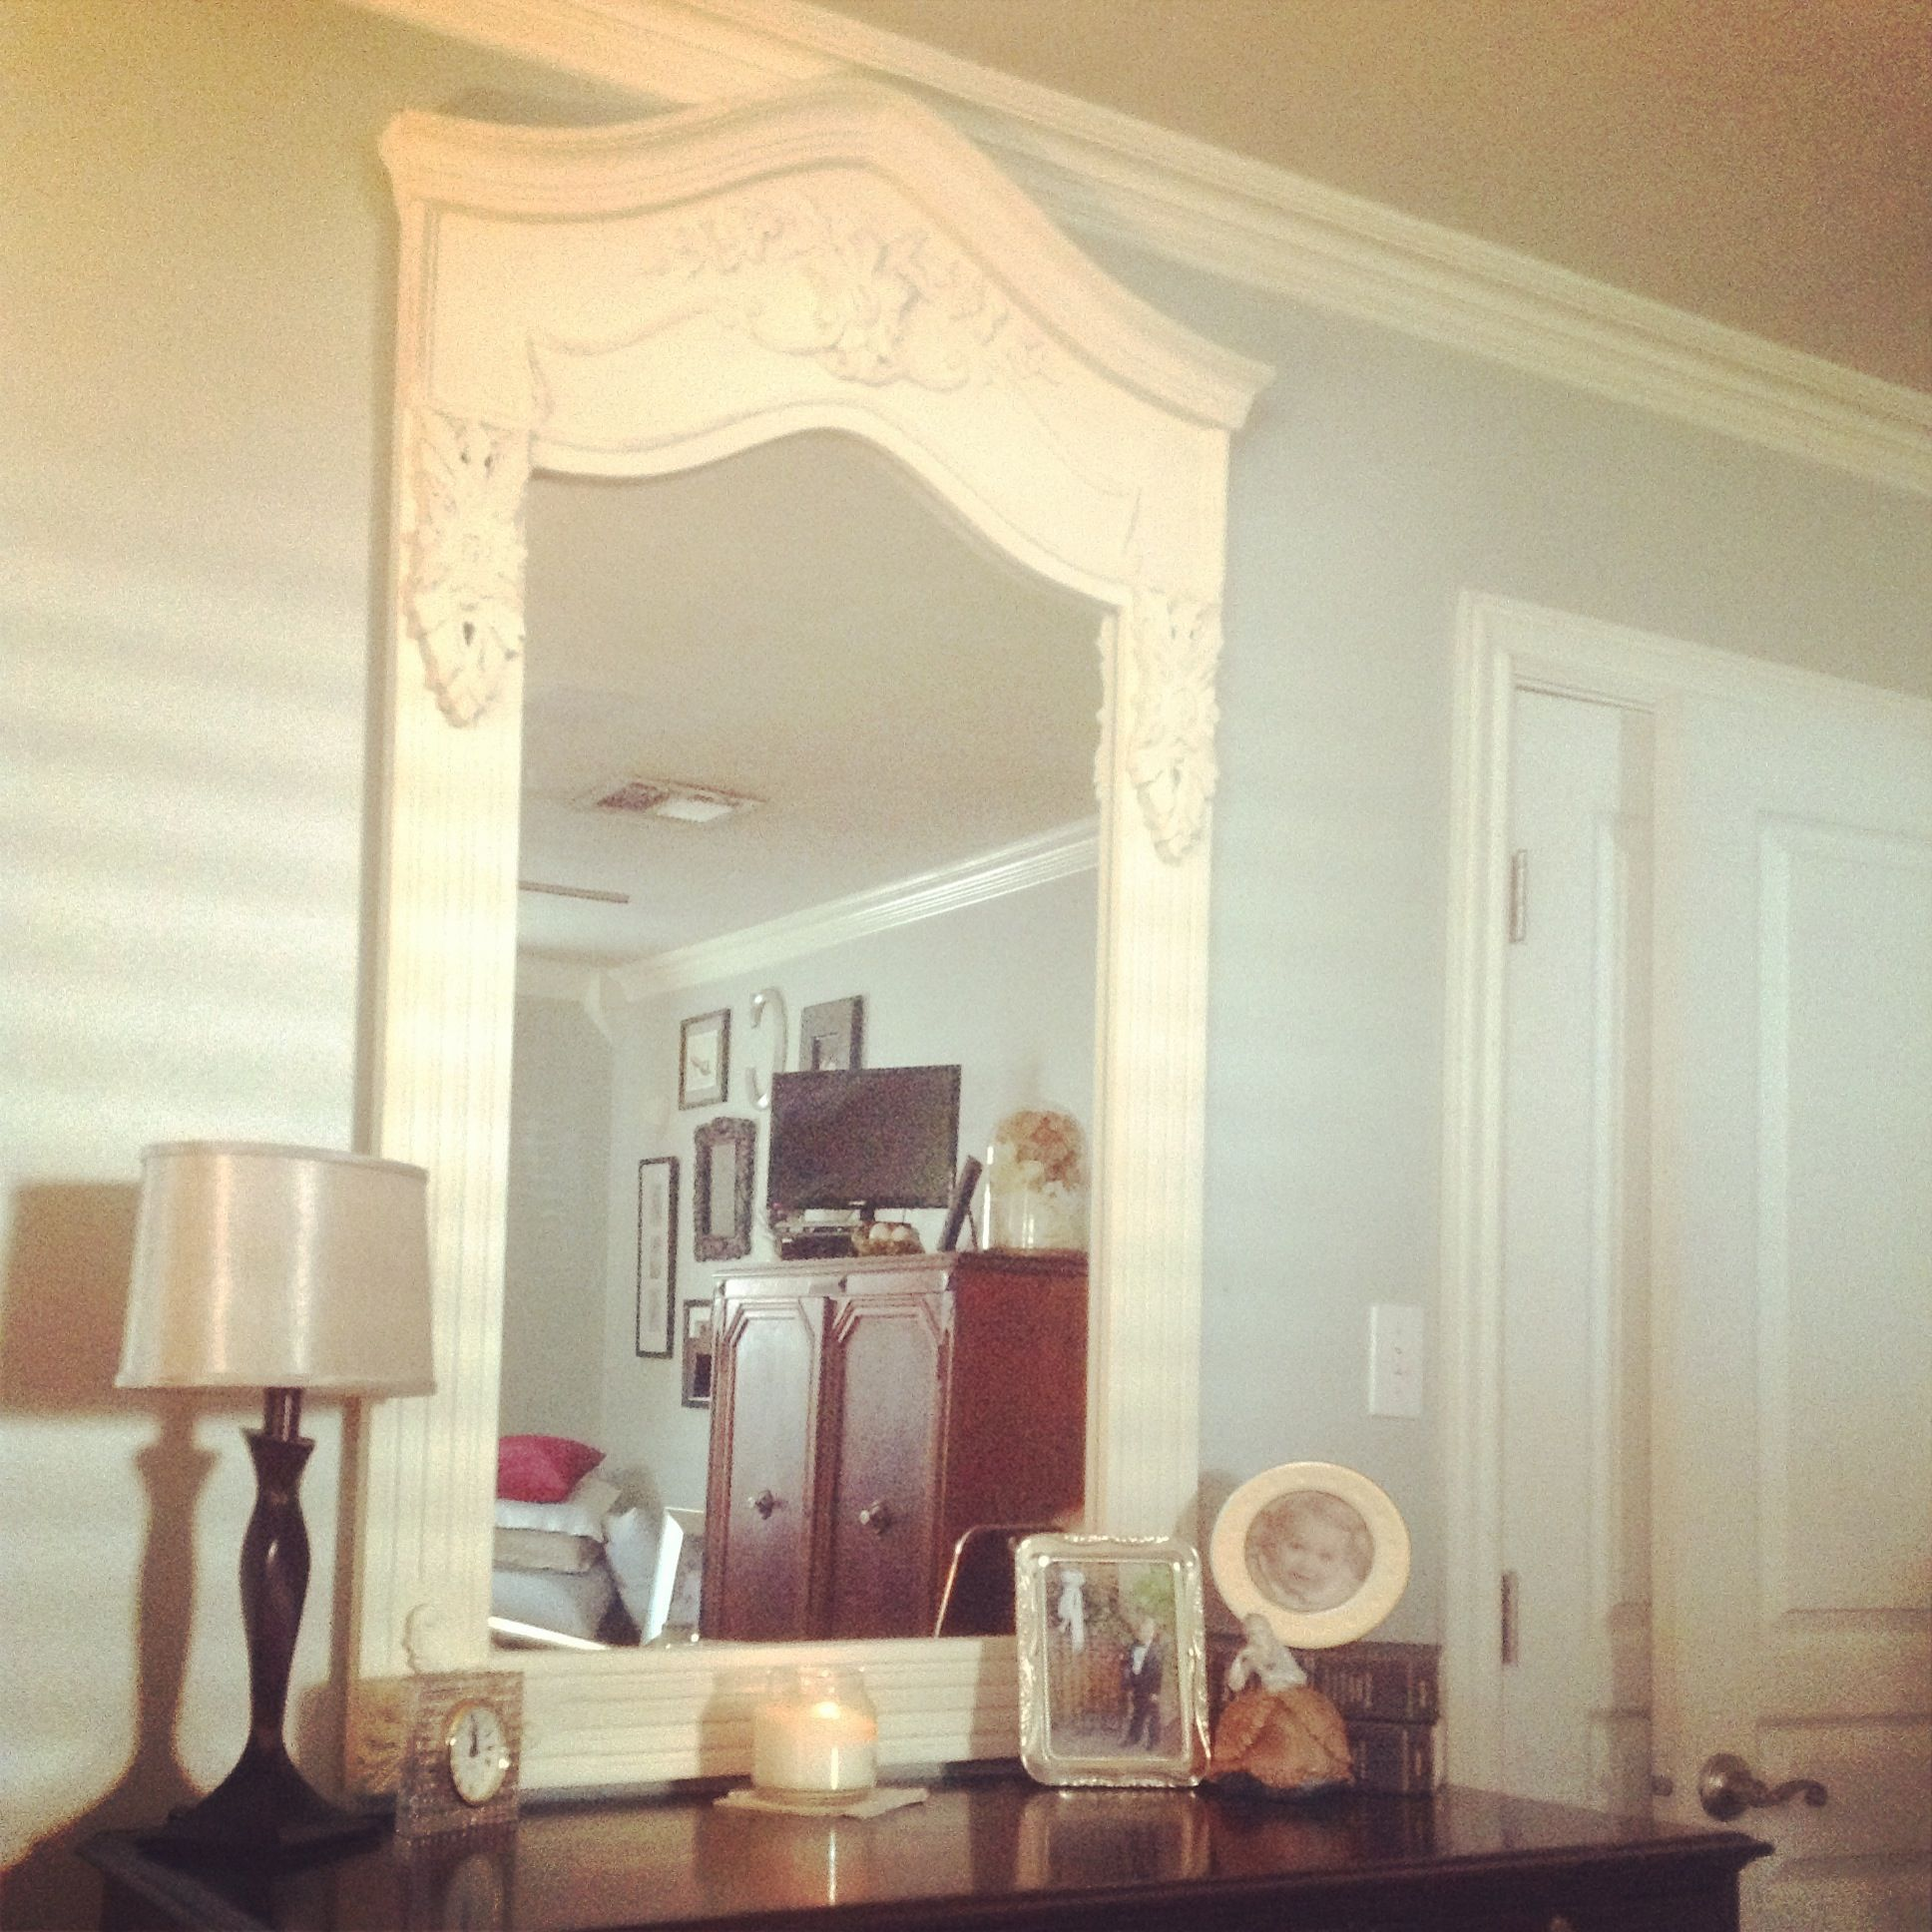 Fabulous TJ Maxx mirror for the bedroom Accents Decor